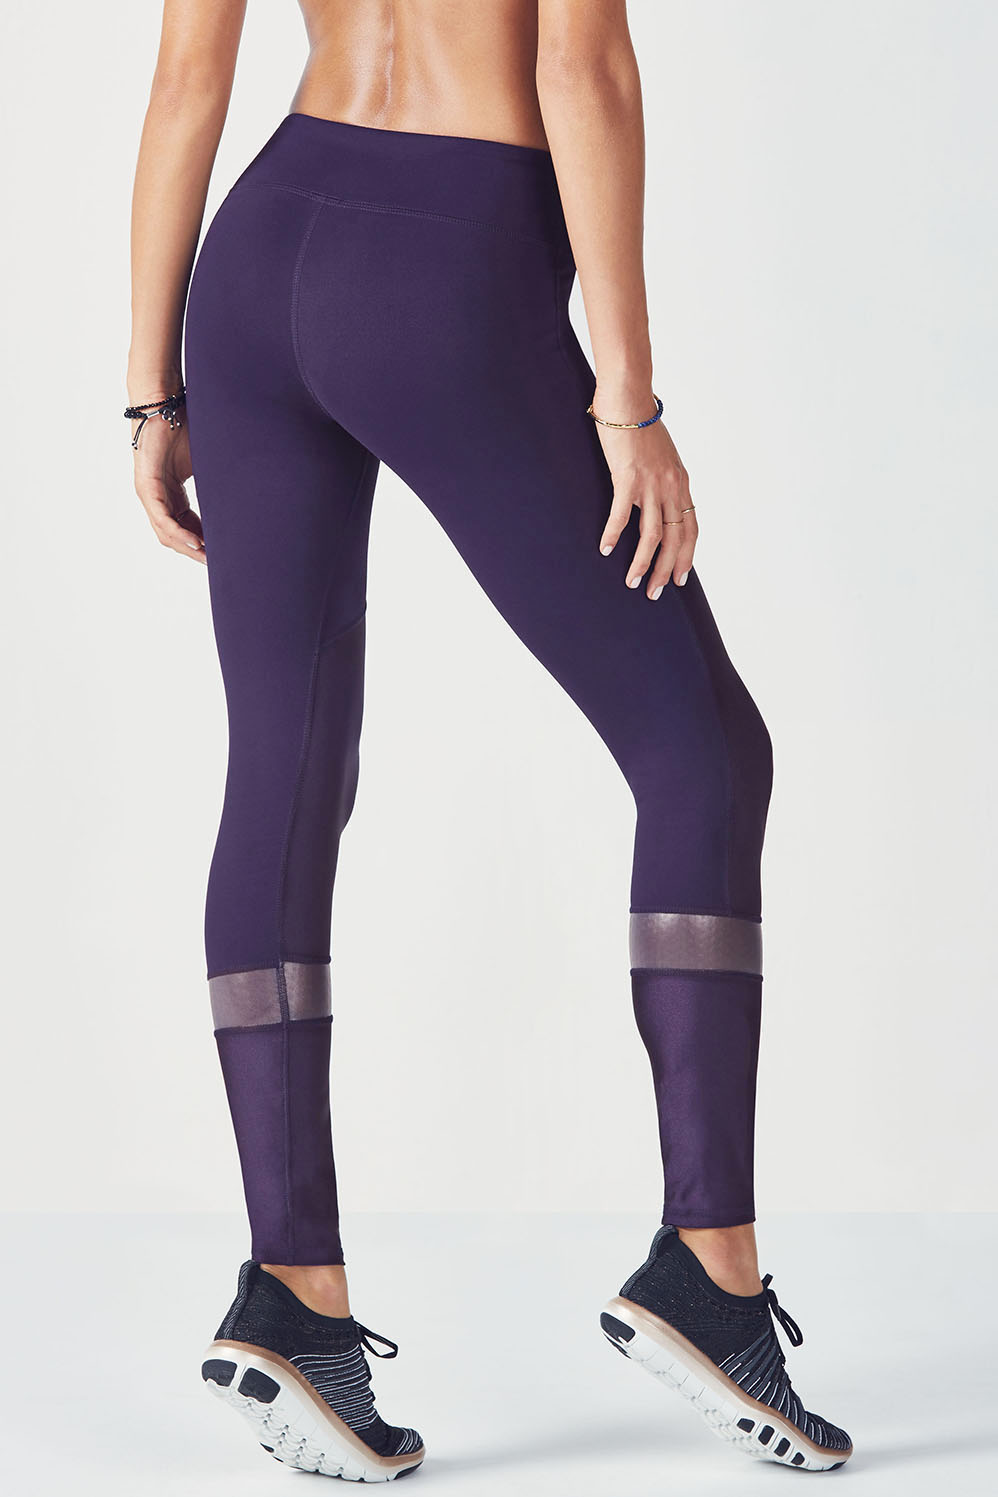 On the other hand, baggy leggings may give your legs a shapeless appearance. Still, they can look good when paired with a big dress of a similar color. If you are looking to give your legs a slimming effect, pair calf length leggings with knee length dresses. If you have small hips, opt for a skater dress.